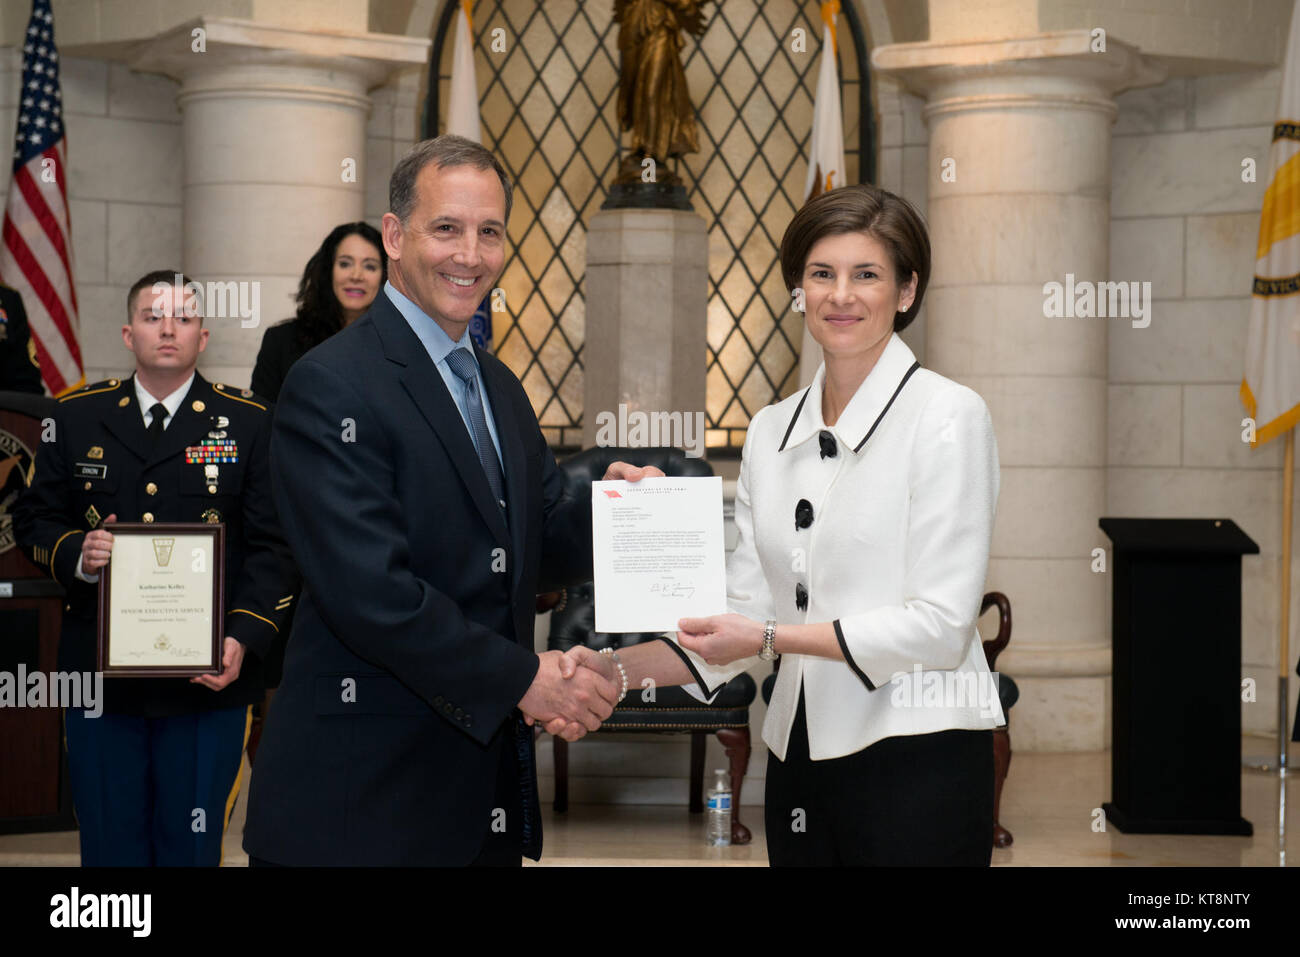 Katharine Kelley, right, superintendent, Arlington National Cemetery, receives the Secretary of the Army's letter - Stock Image